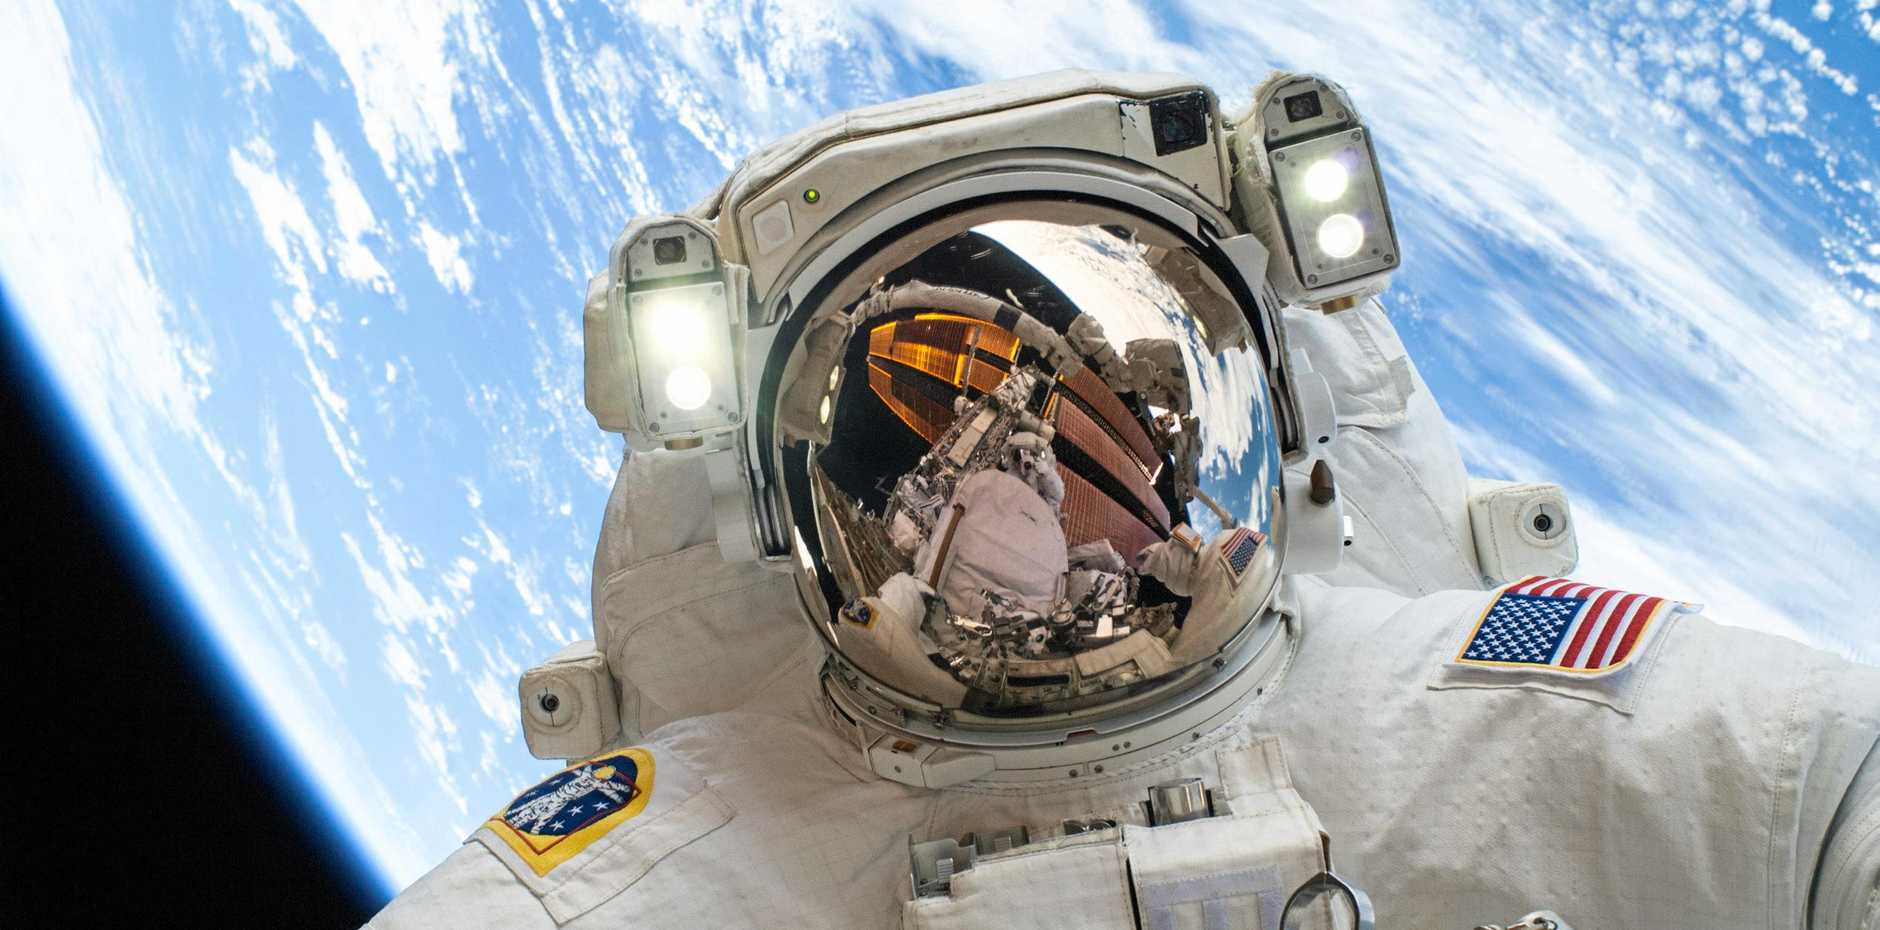 NASA astronaut Mike Hopkins, Expedition 38 flight engineer, participates in the second of the two spacewalks of the mission on December 24, 2013, spread over a four day period, which were designed to allow the crew to change out a faulty water pump on the exterior of the Earth orbiting International Space Station. He was joined on both spacewalks by NASA astronaut Rick Mastracchio, whose image shows up in Hopkins' helmet visor.